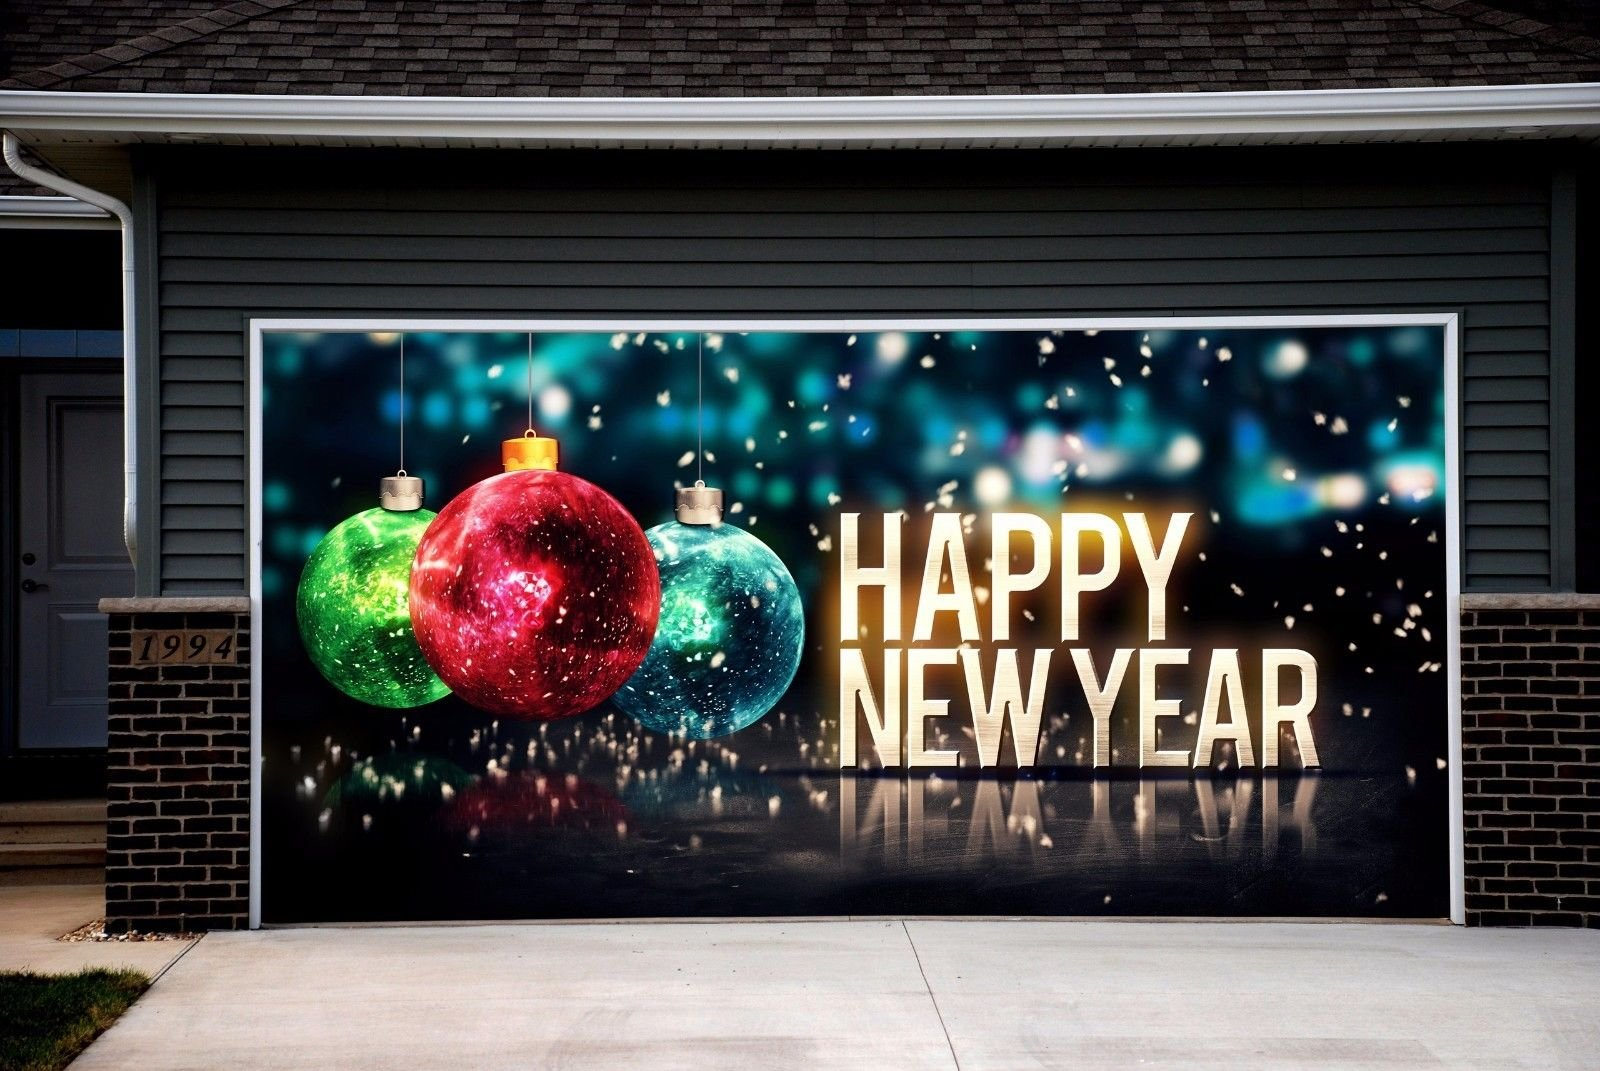 walltattoohome christmas garage door billboard for 2 car garage door merry christmas decorations full color print